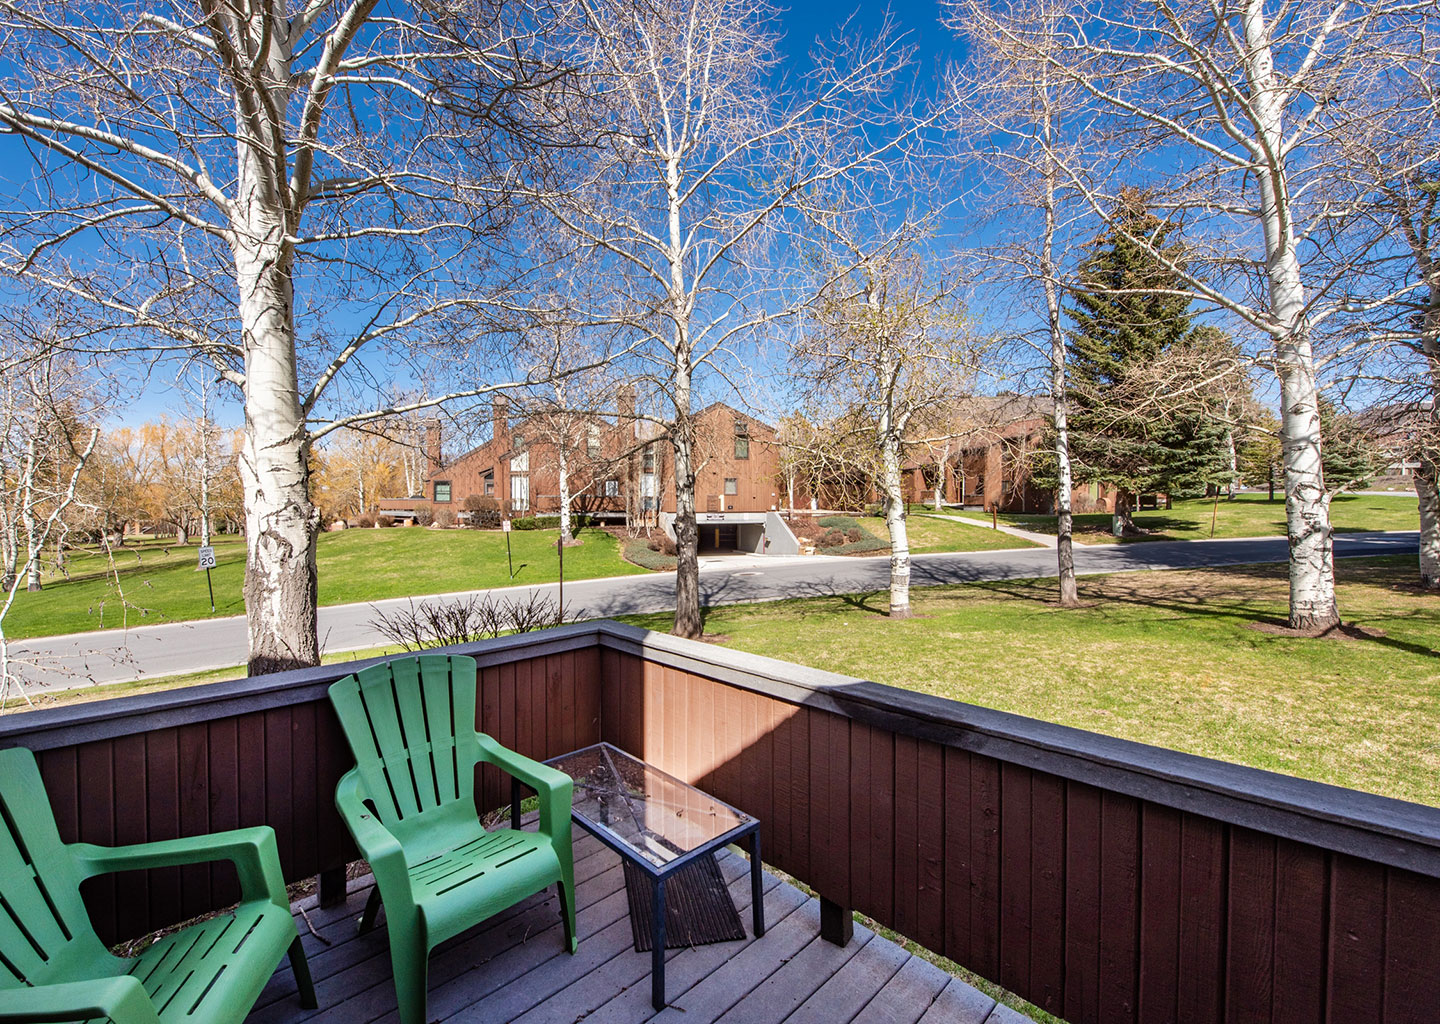 Outdoor Porch in Summertime at Three Kings Condominiums in Downtown Park City, Utah